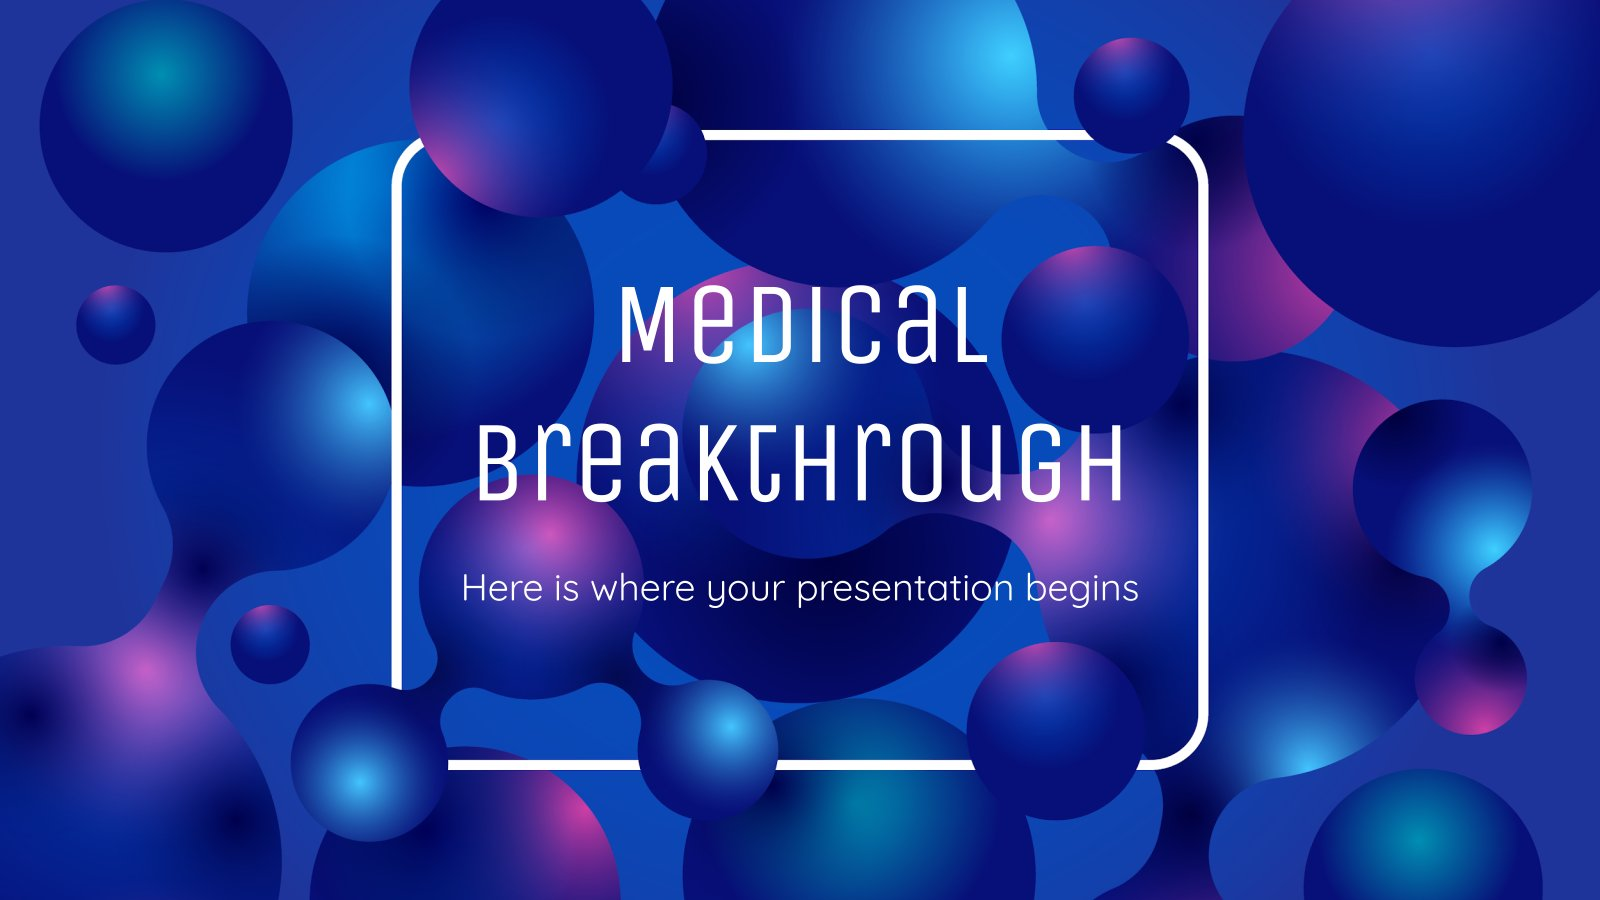 Medical Breakthrough Background presentation template